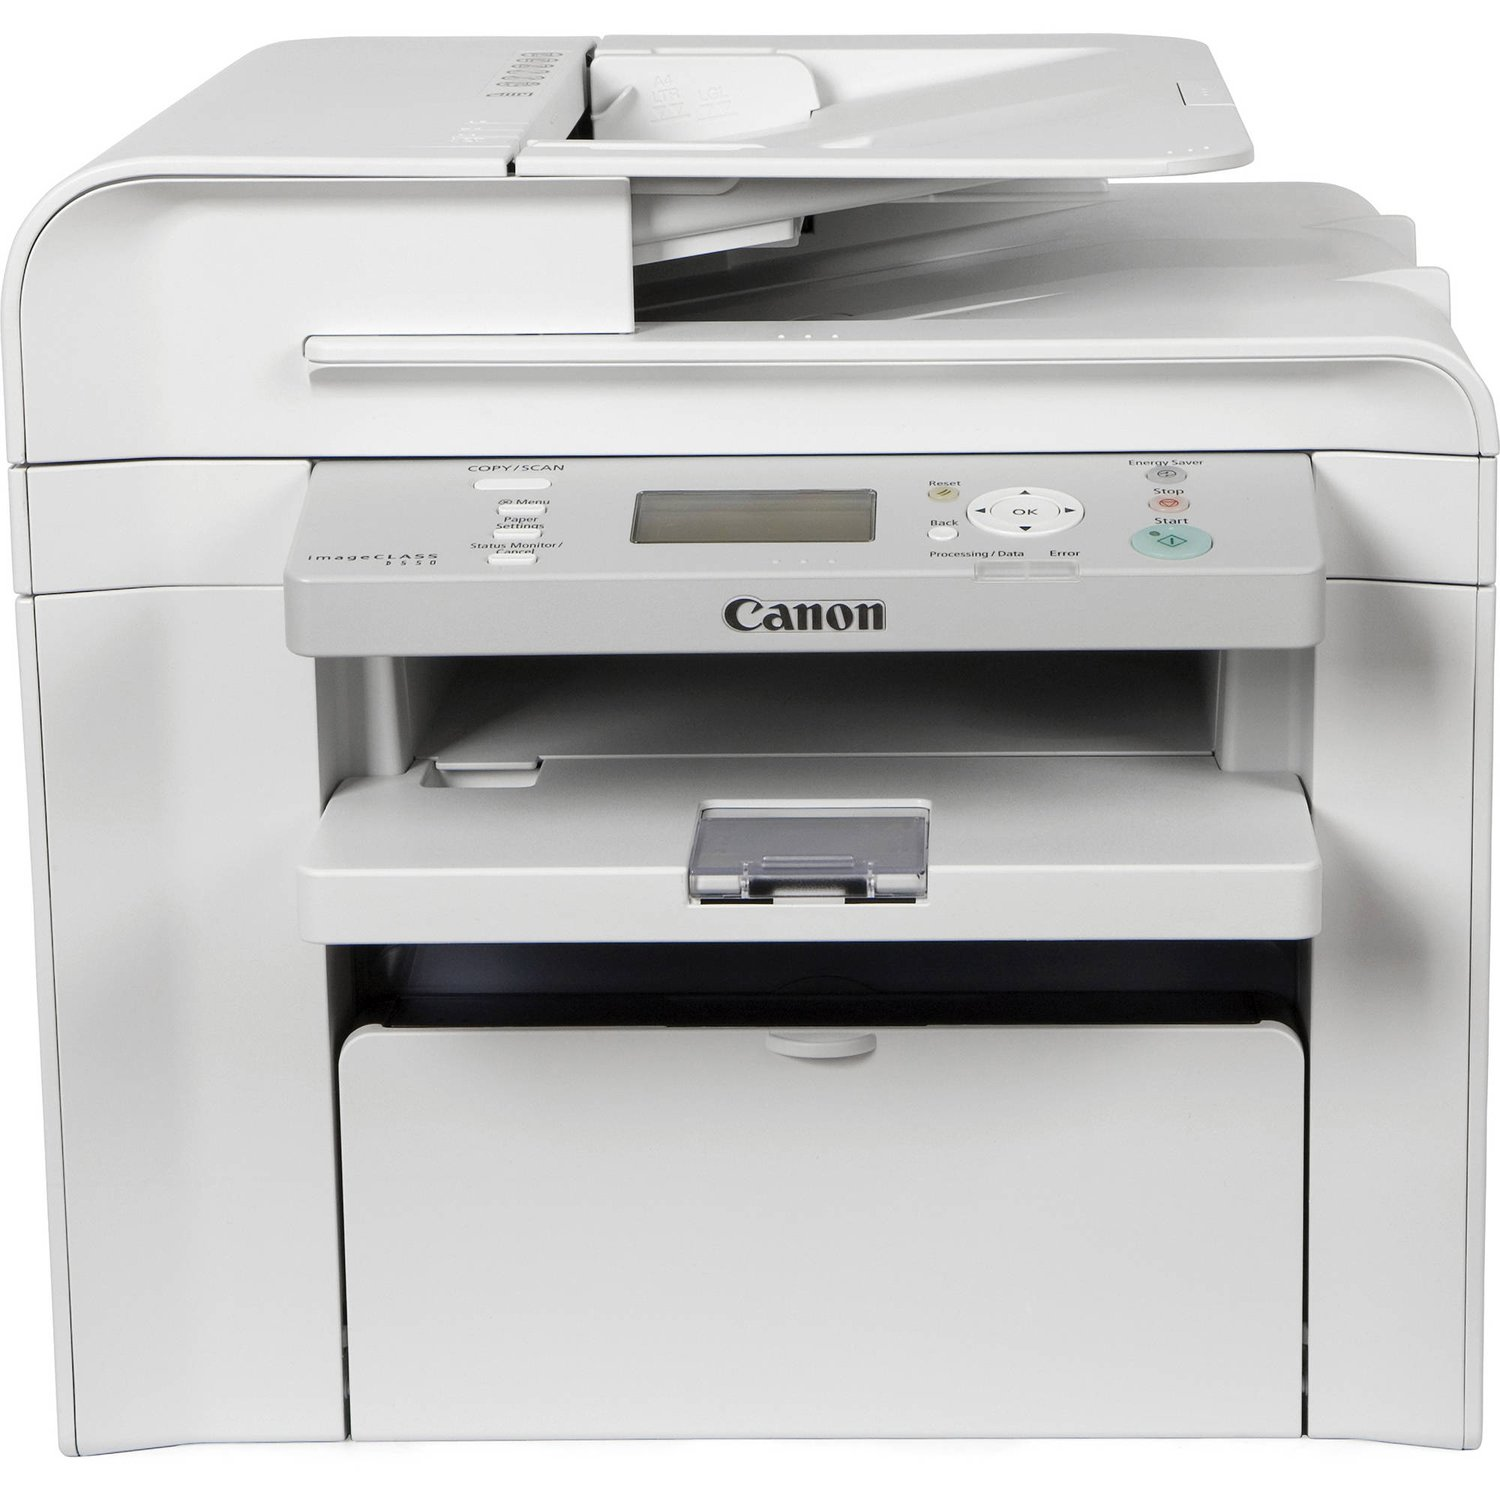 Amazon.com: Canon imageCLASS D550 Laser Multifunction Copier: Electronics